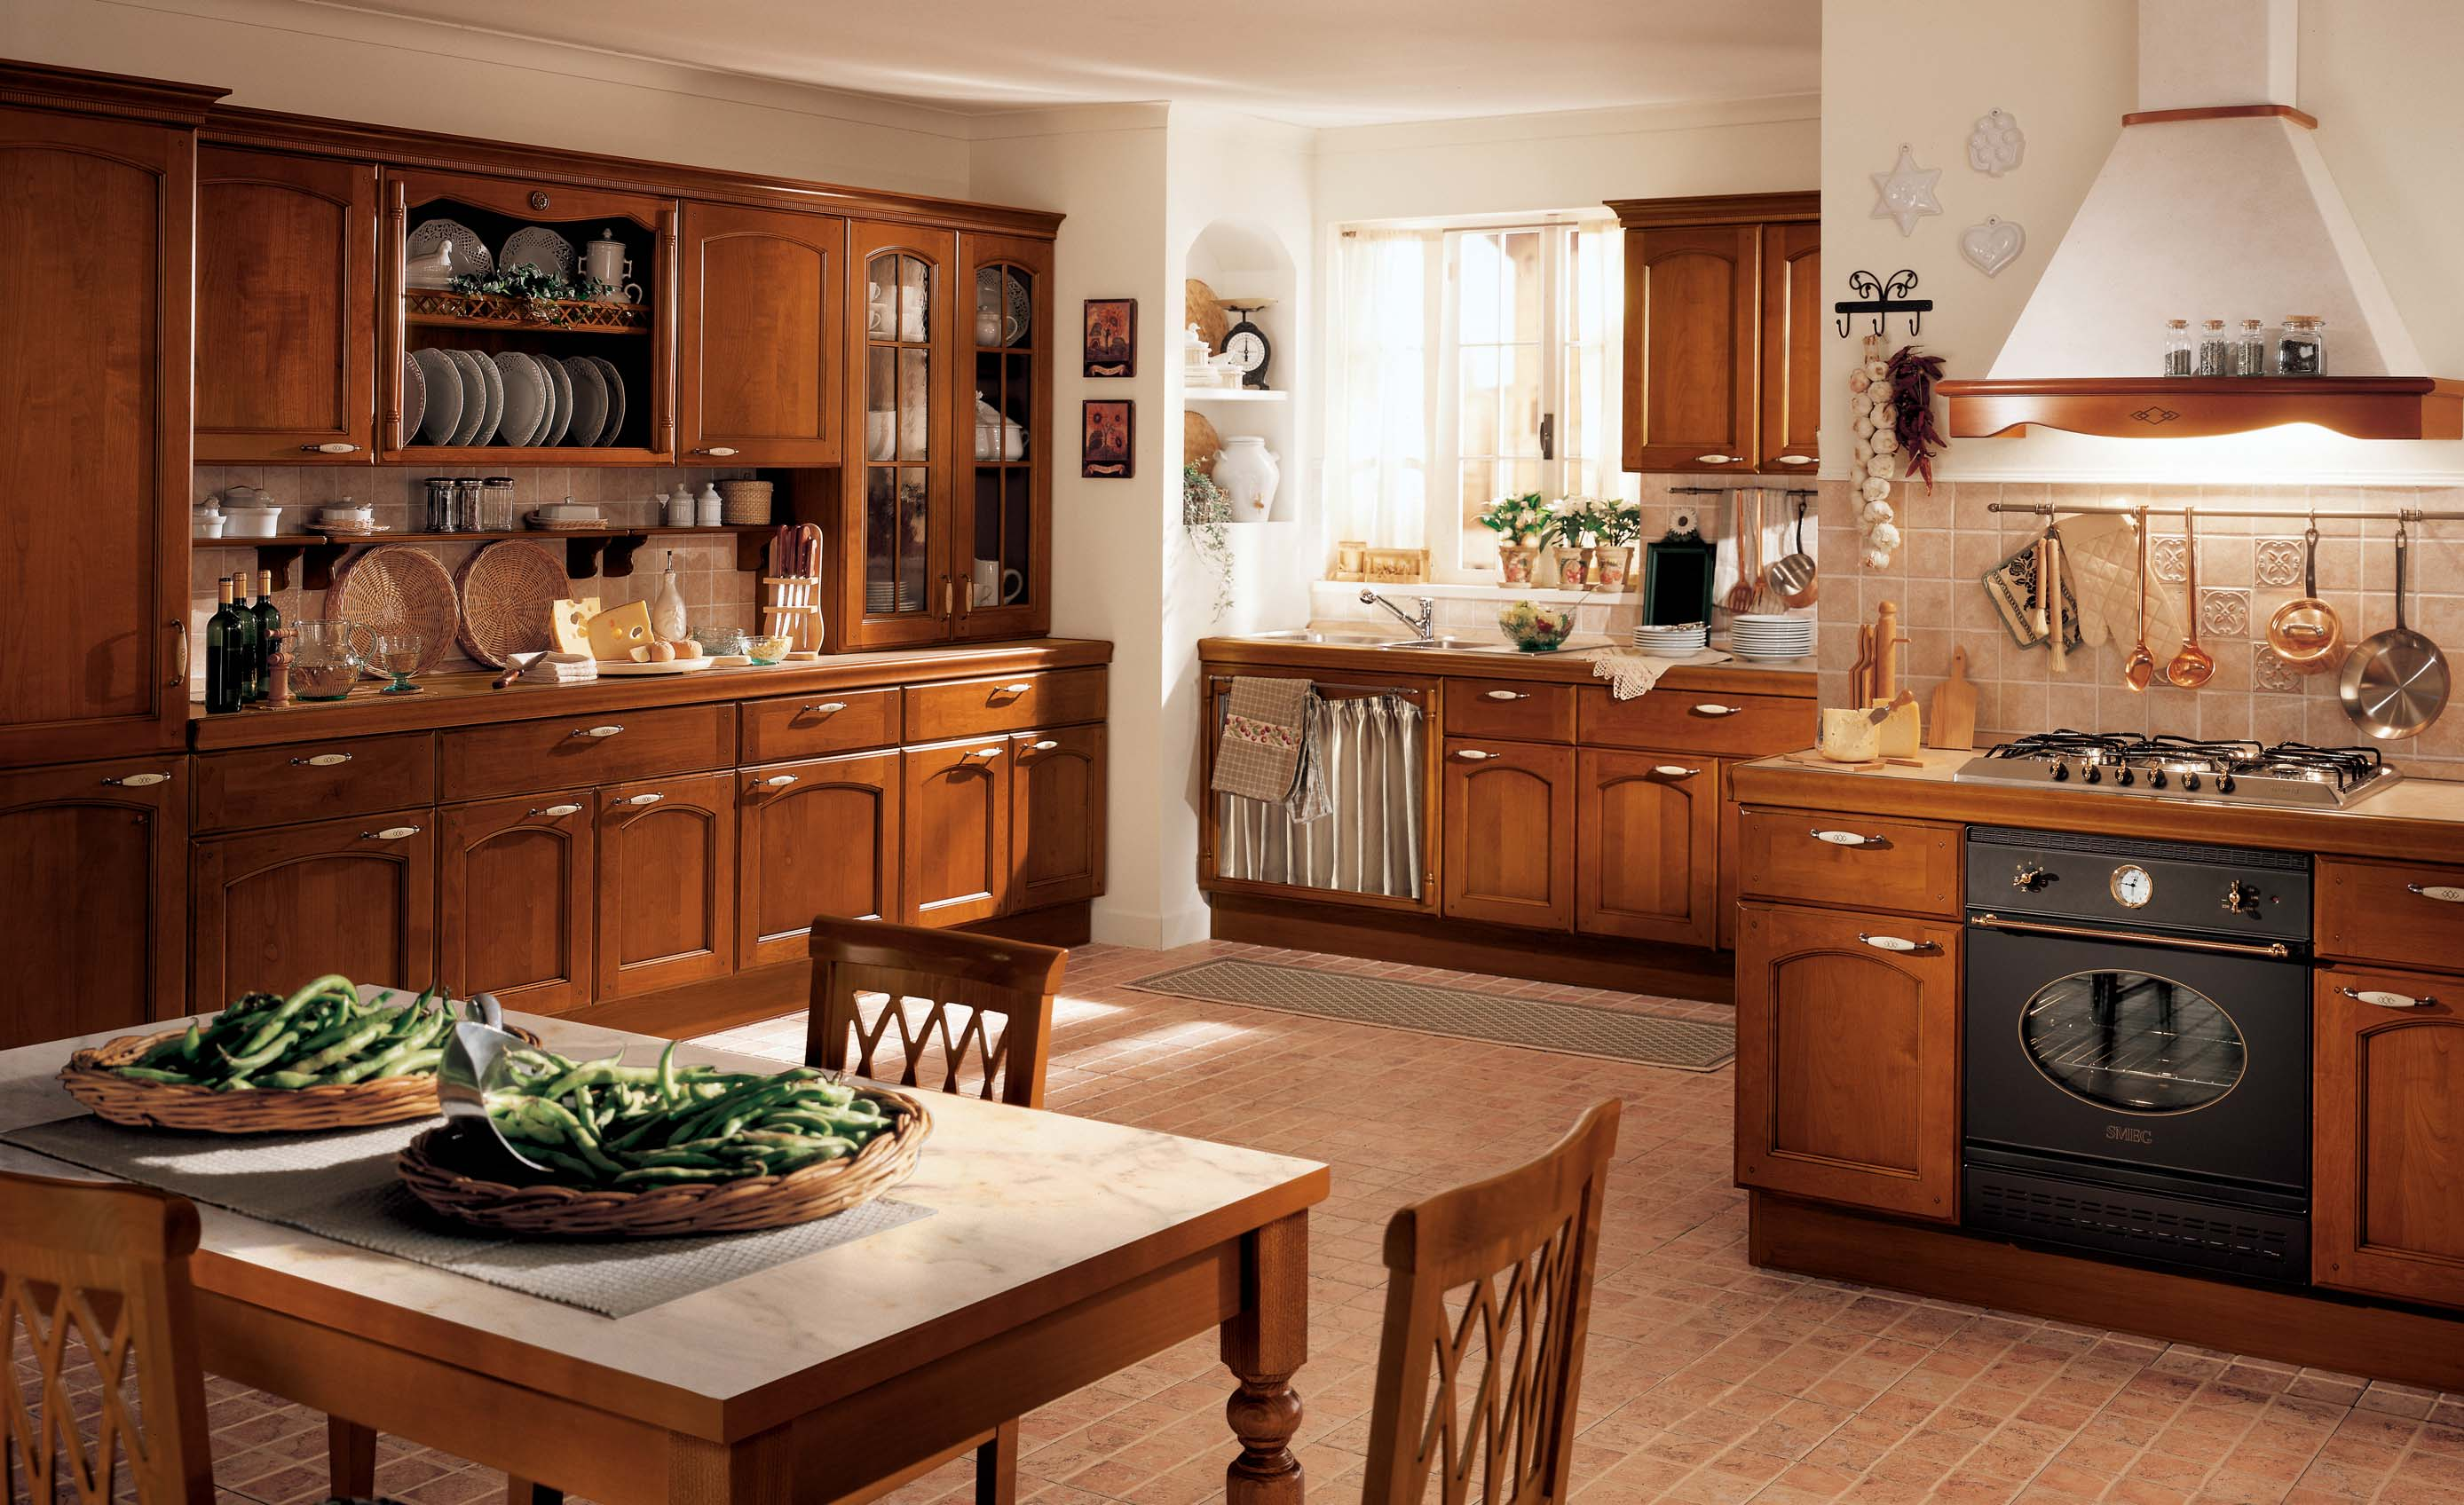 Home depot kitchen design gallery homesfeed for Home kitchen design images